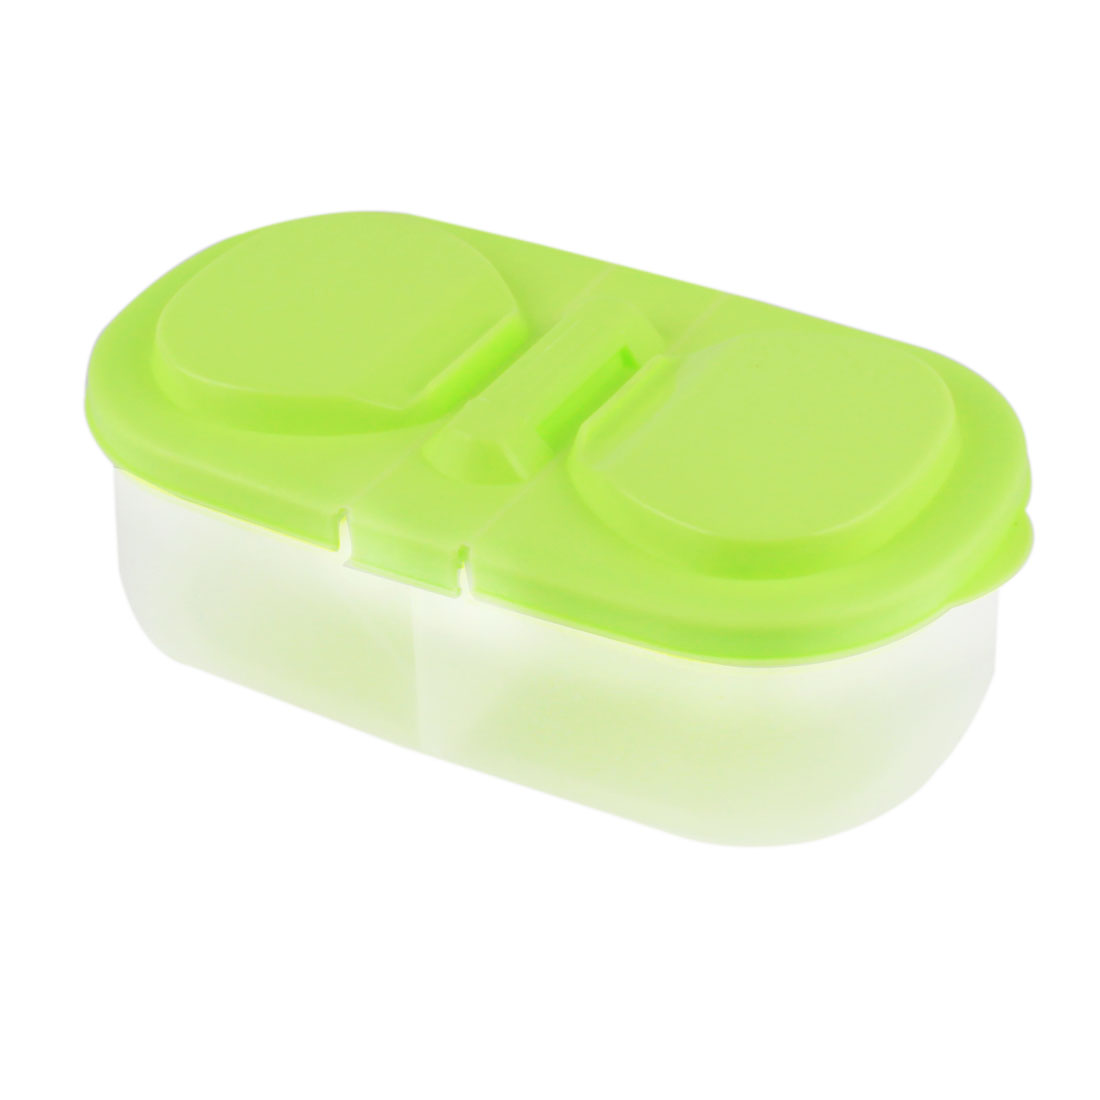 Home Kitchenware Plastic 2 Slots Food Vegetable Fruit Bean Storage Container Box Green